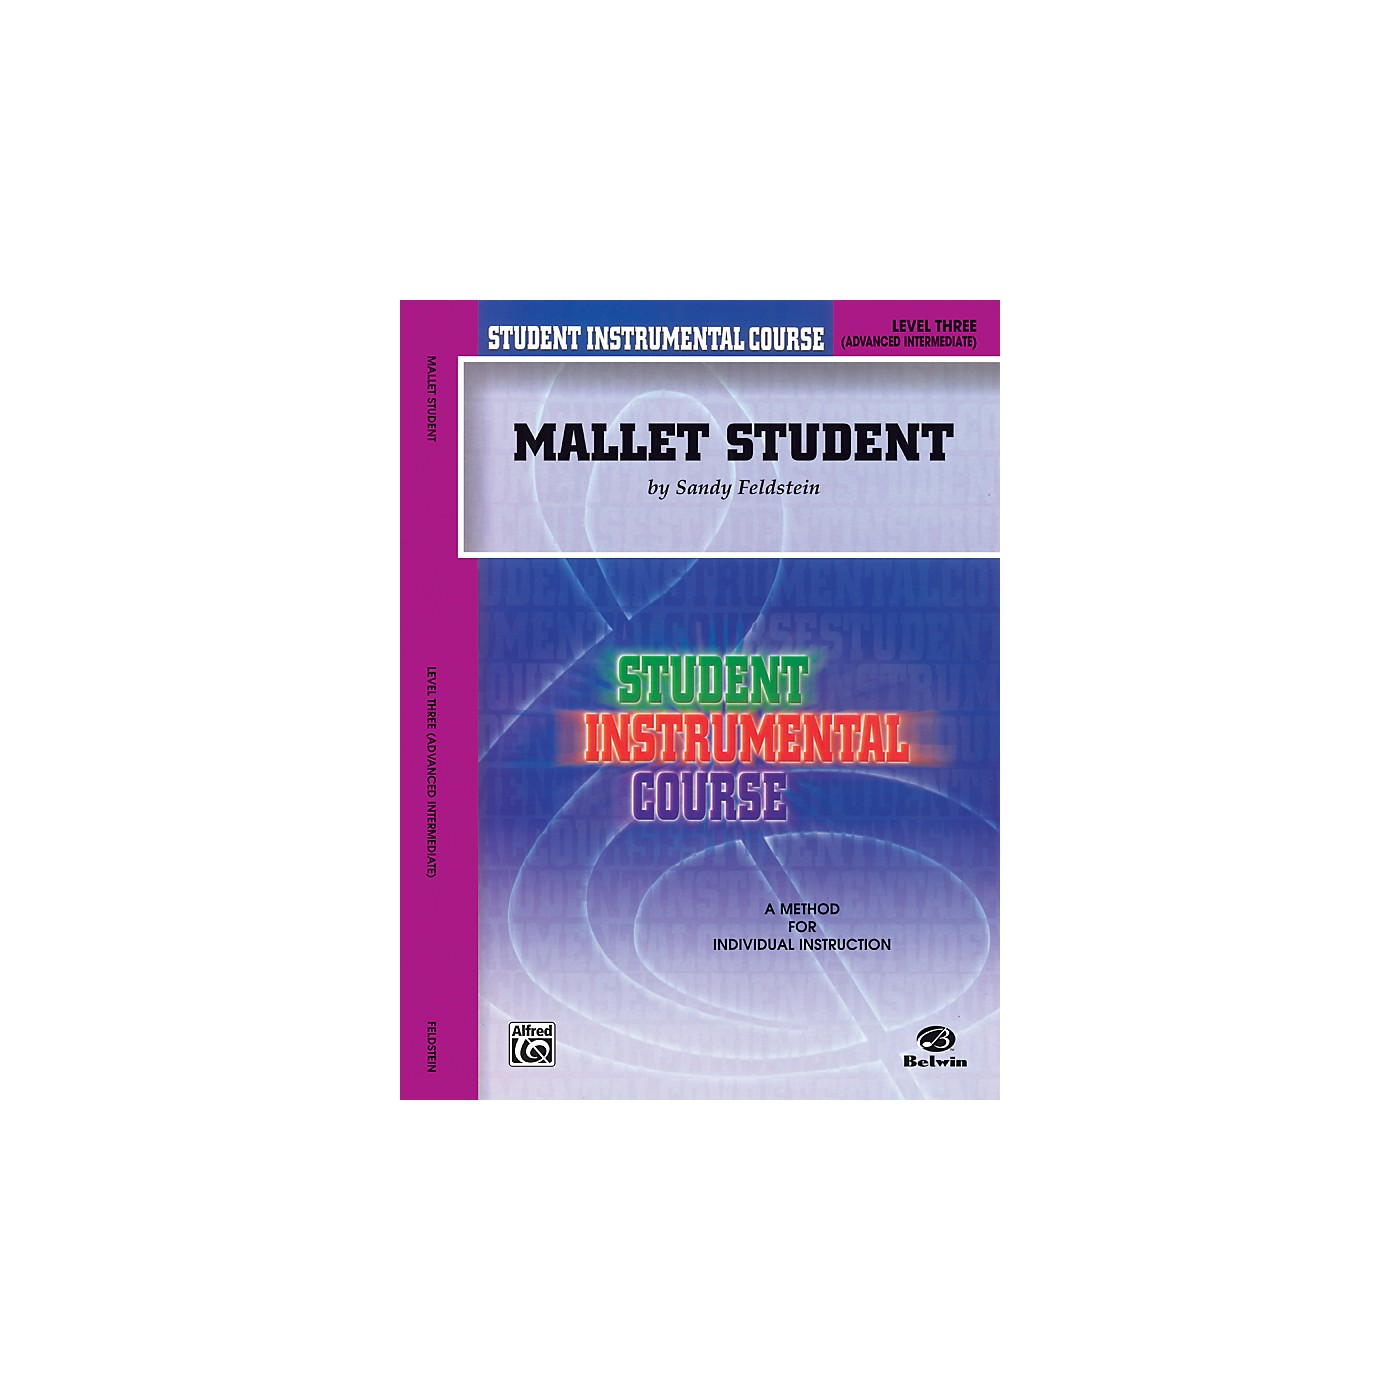 Alfred Student Instrumental Course Mallet Student Level 3 Book thumbnail